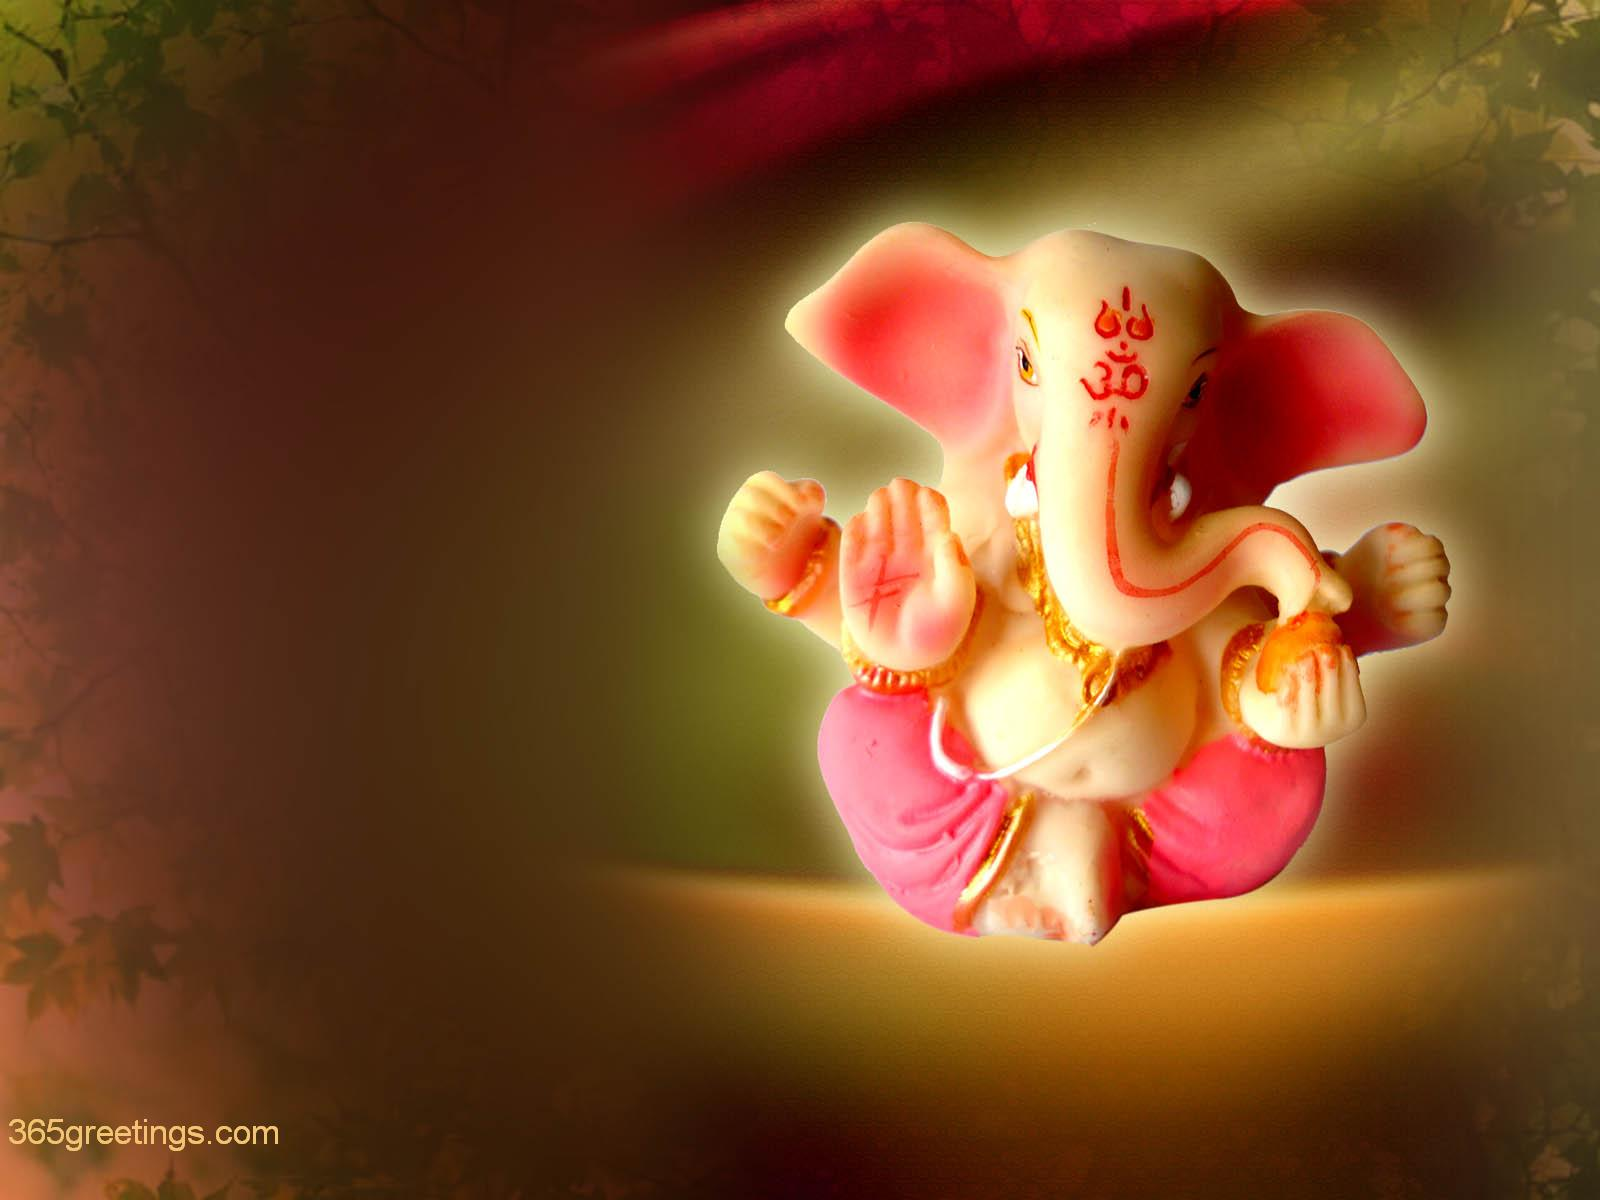 lord ganesha new wallpaper